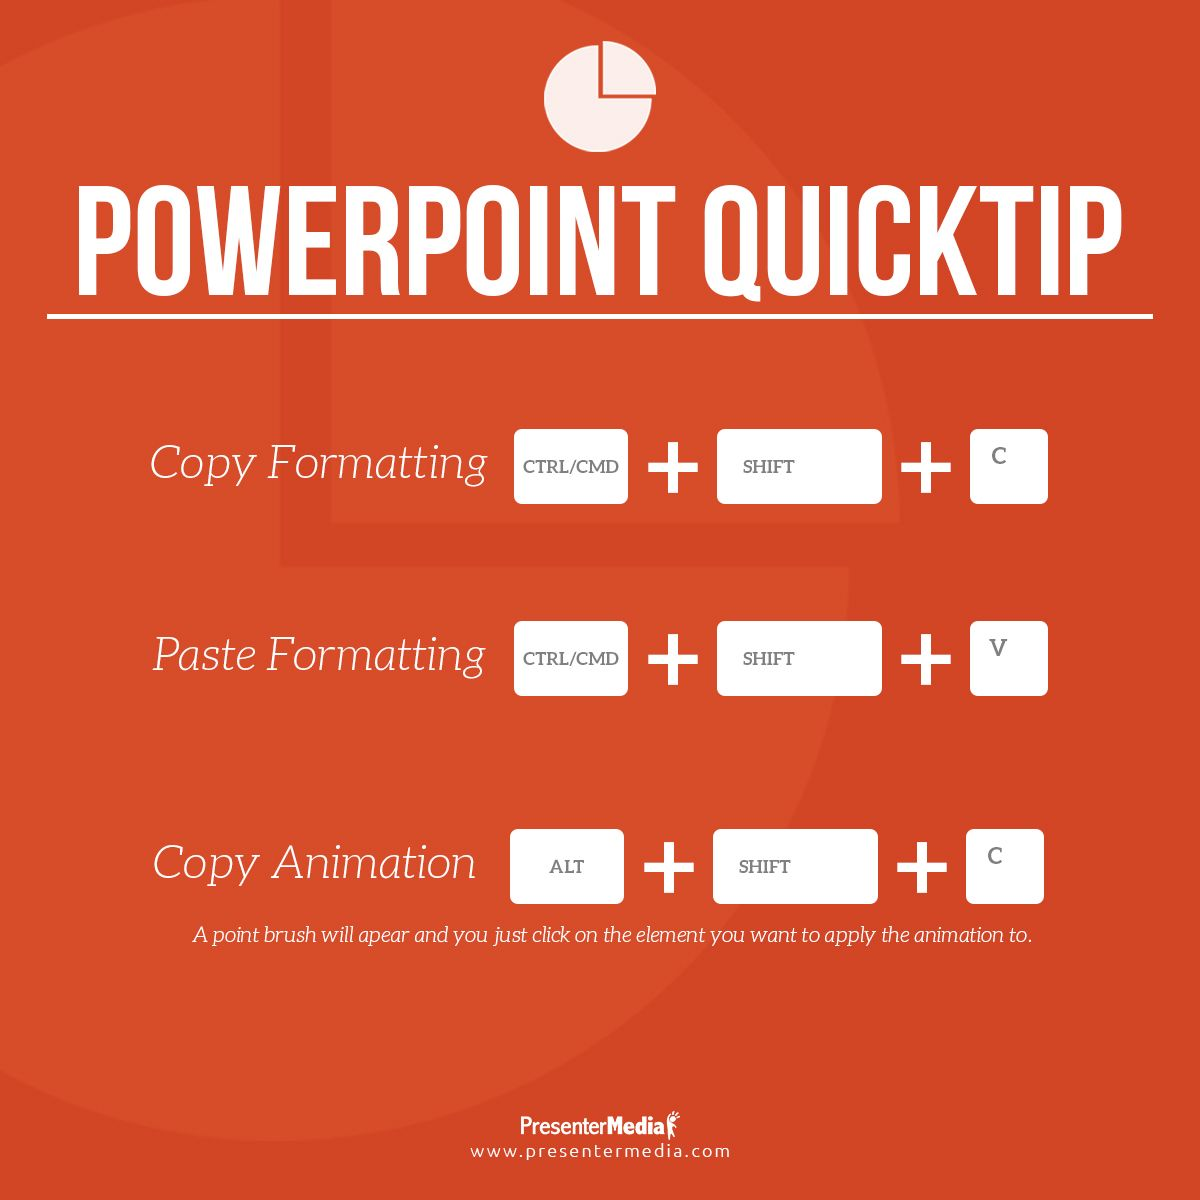 Quick And Easy Keyboard Shortcuts To Copy Amp Paste Shape